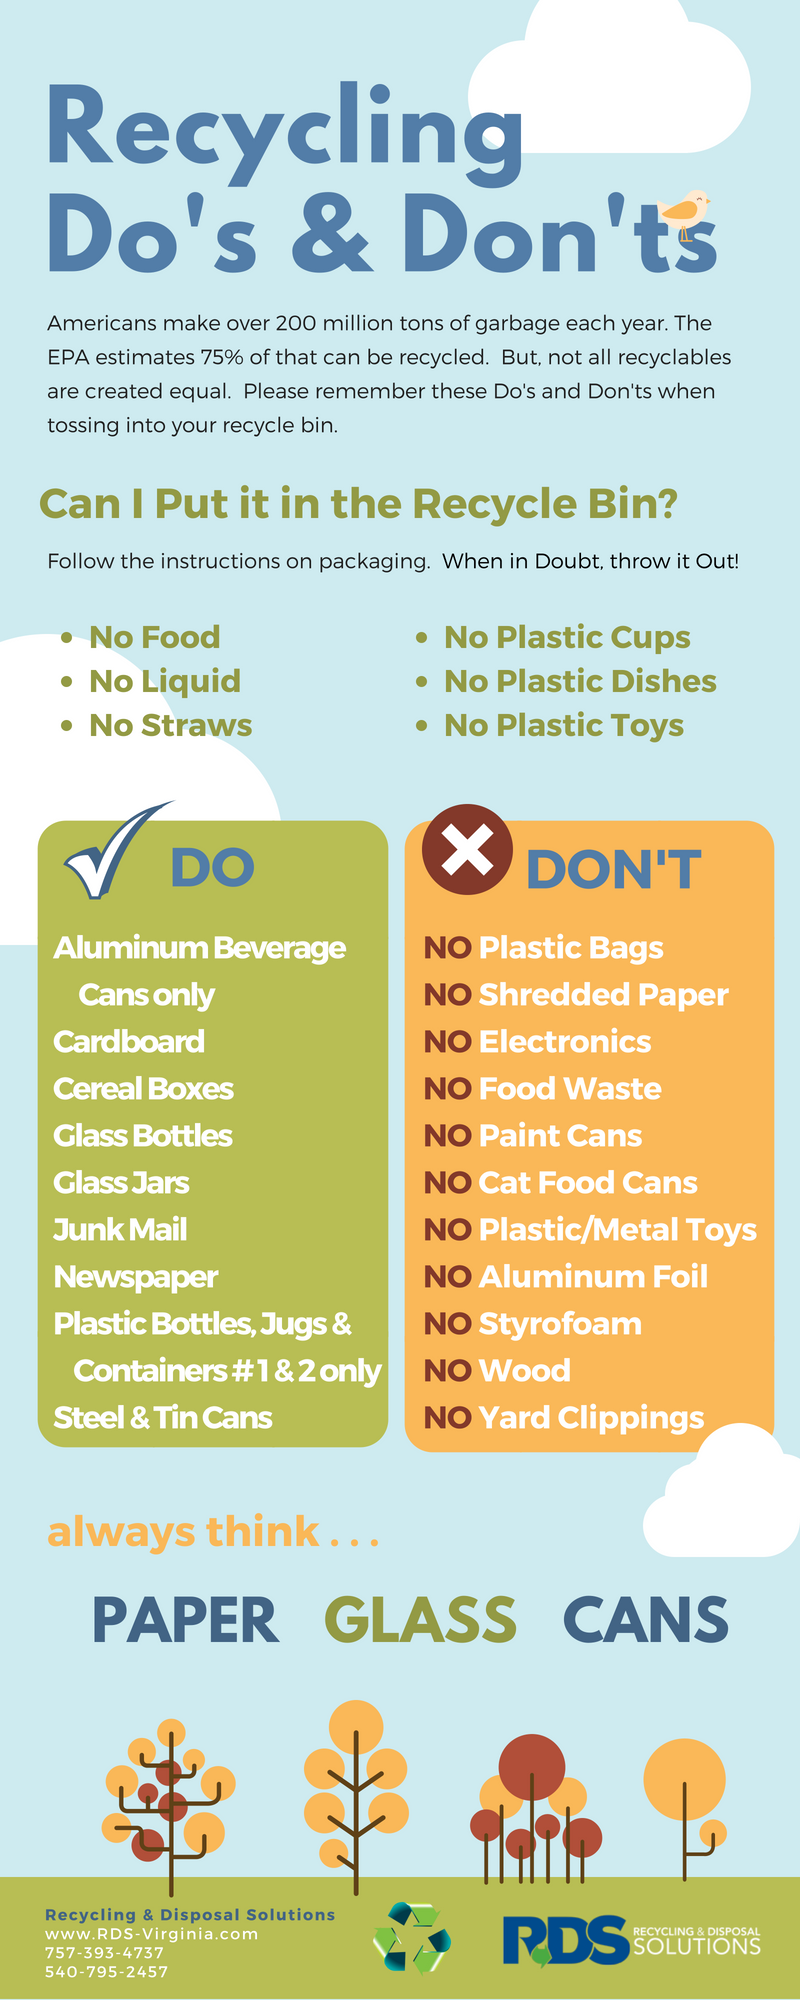 Recycling Dos and Donts